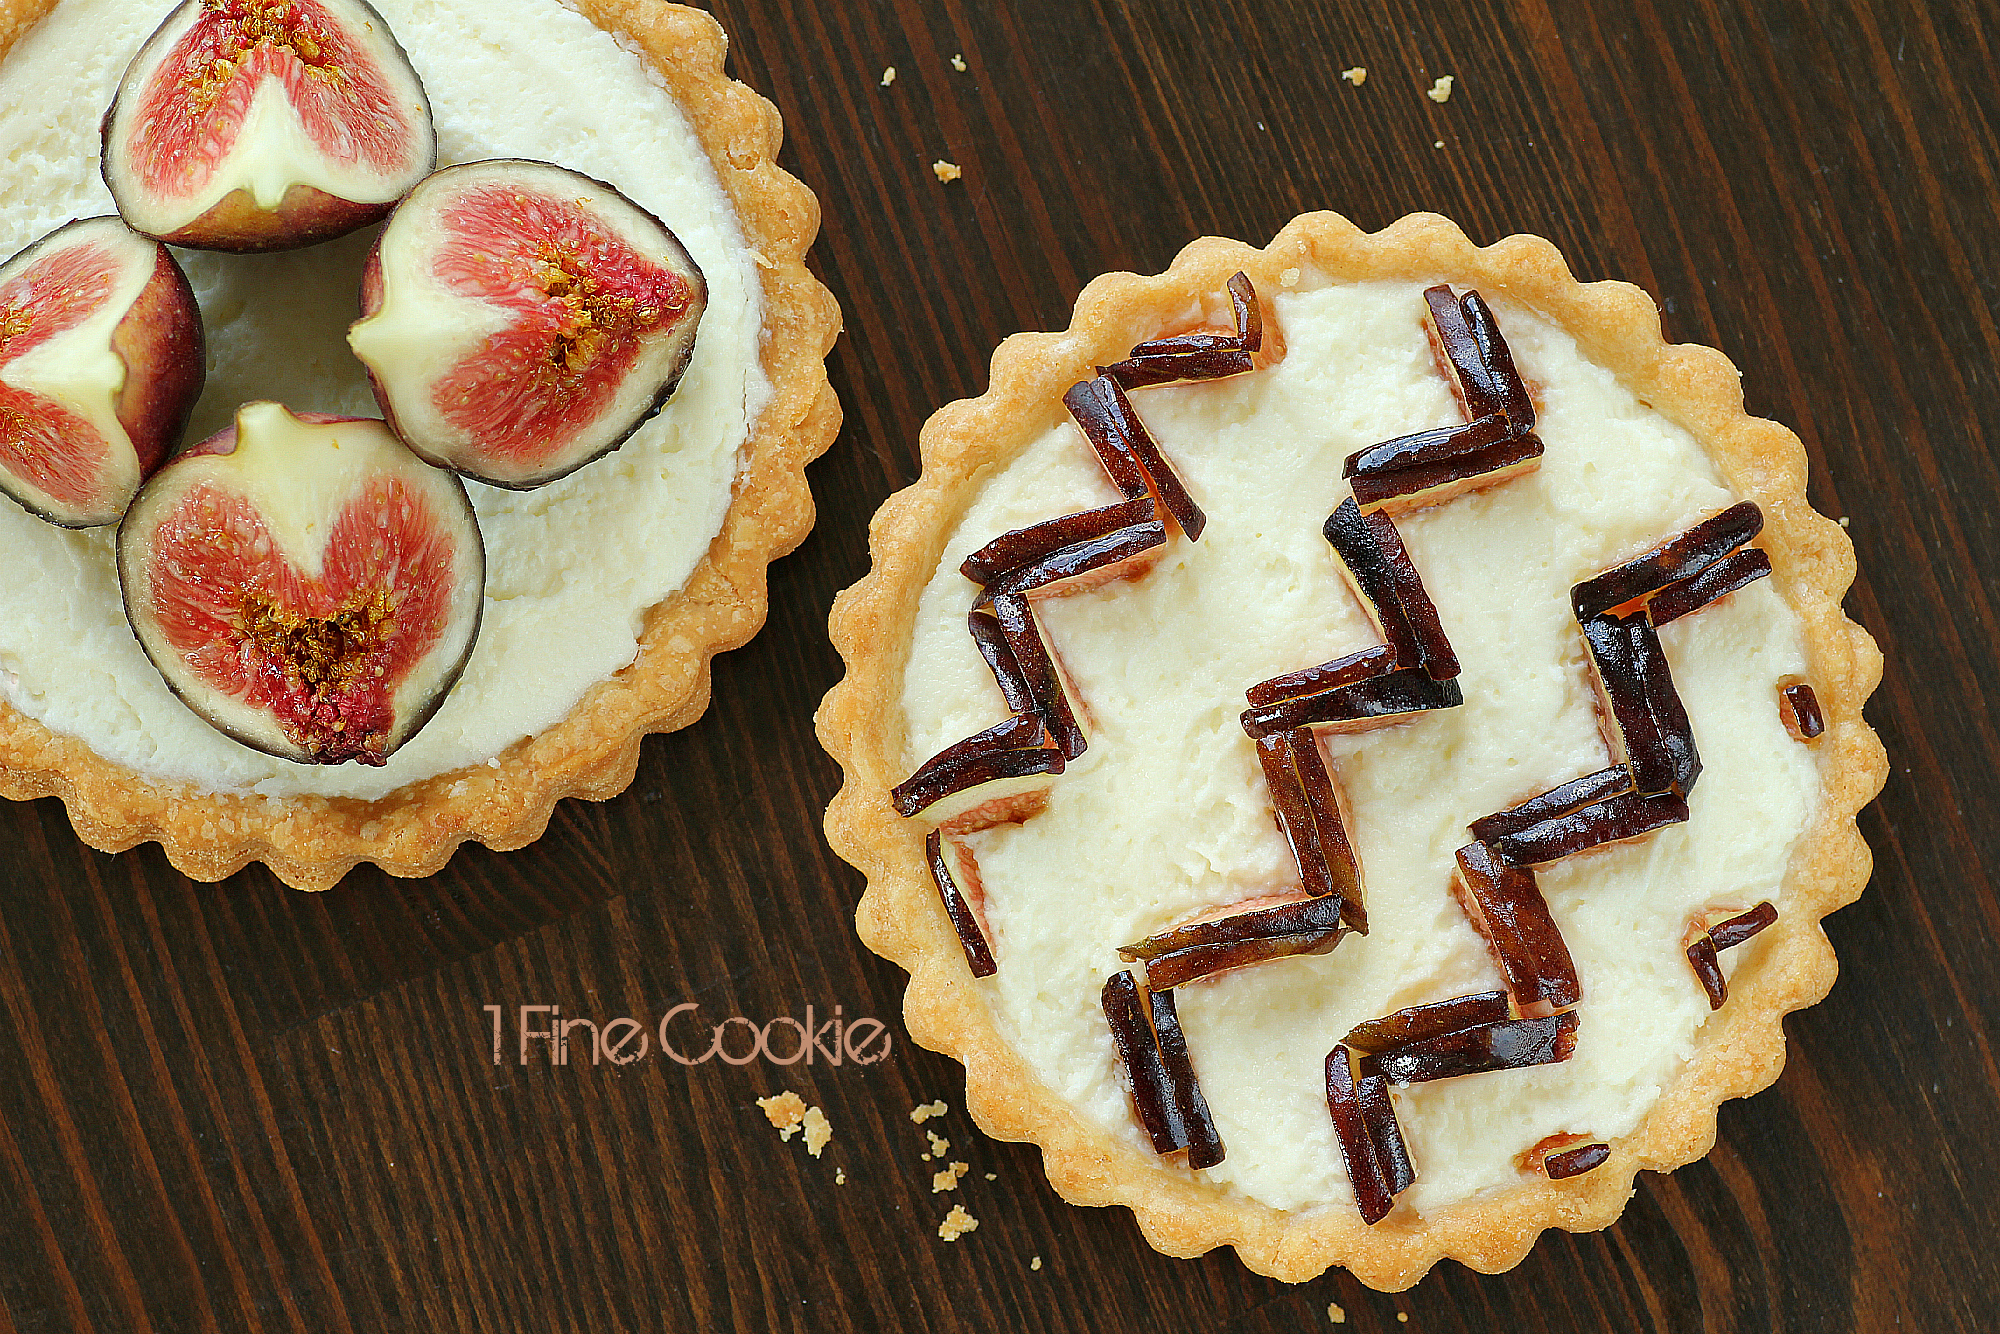 Chevron Pattern Fig Tart Preppify your Dessert  1 Fine